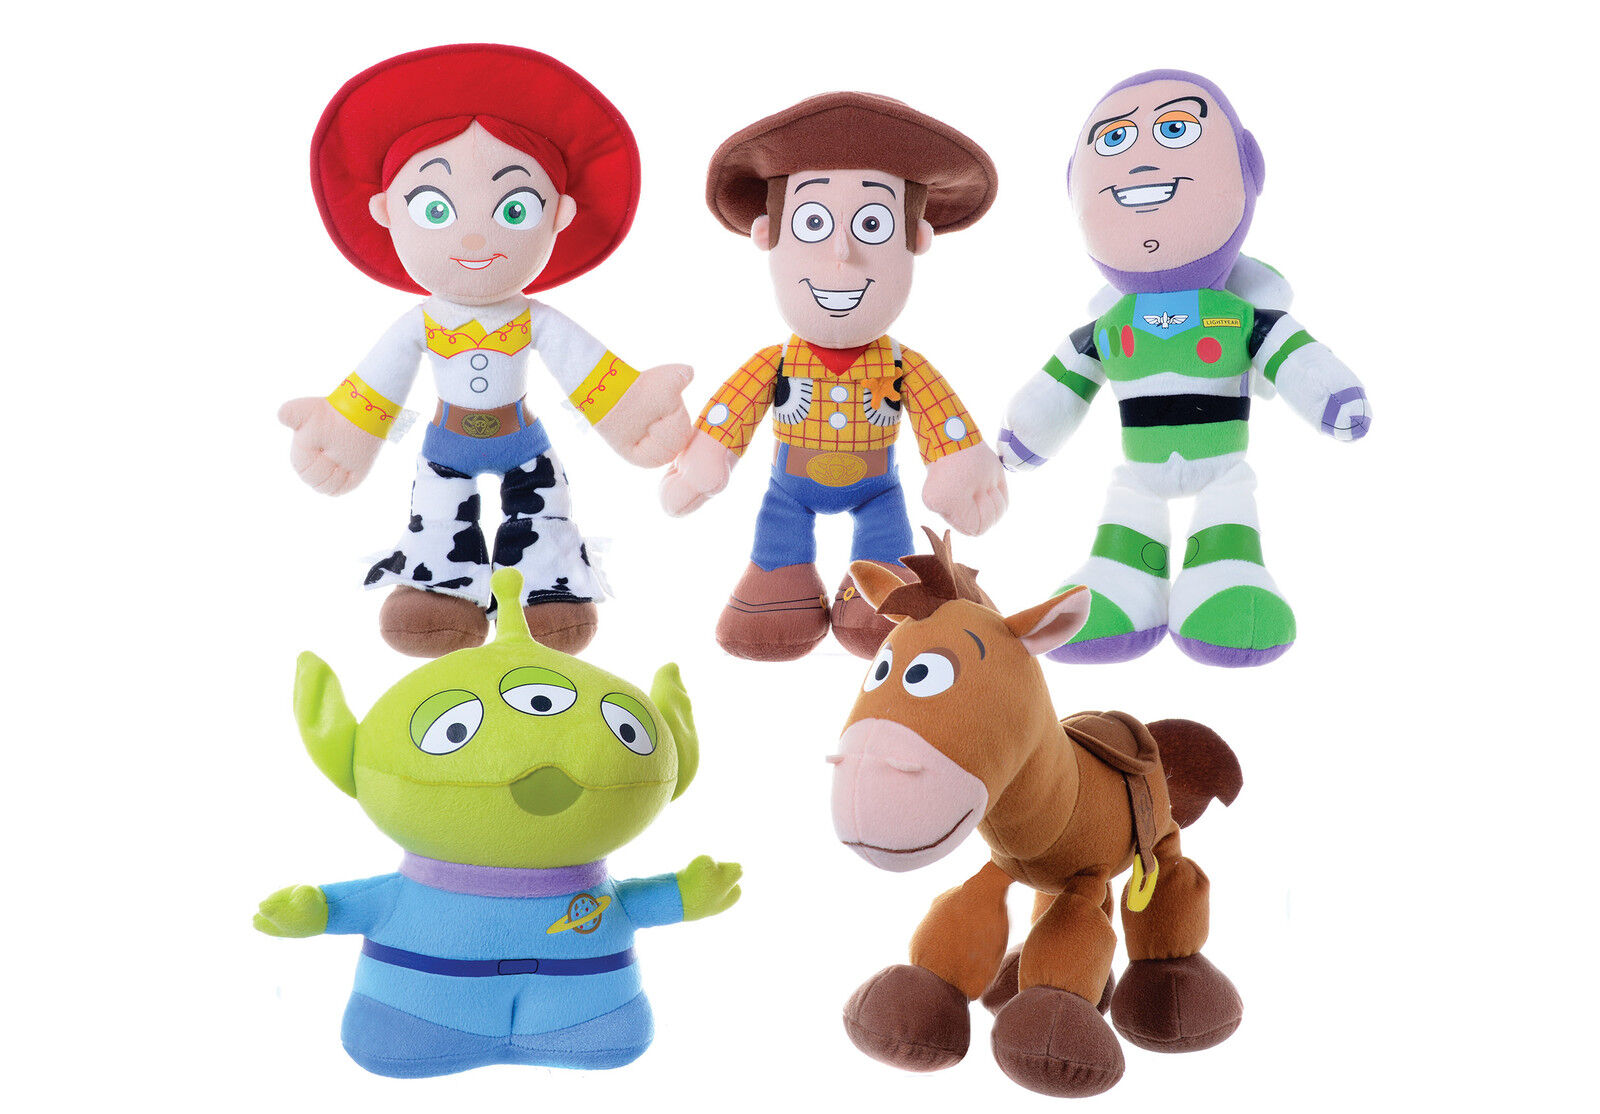 New Soft Toys : New official quot toy story plush soft toys buzz lightyear